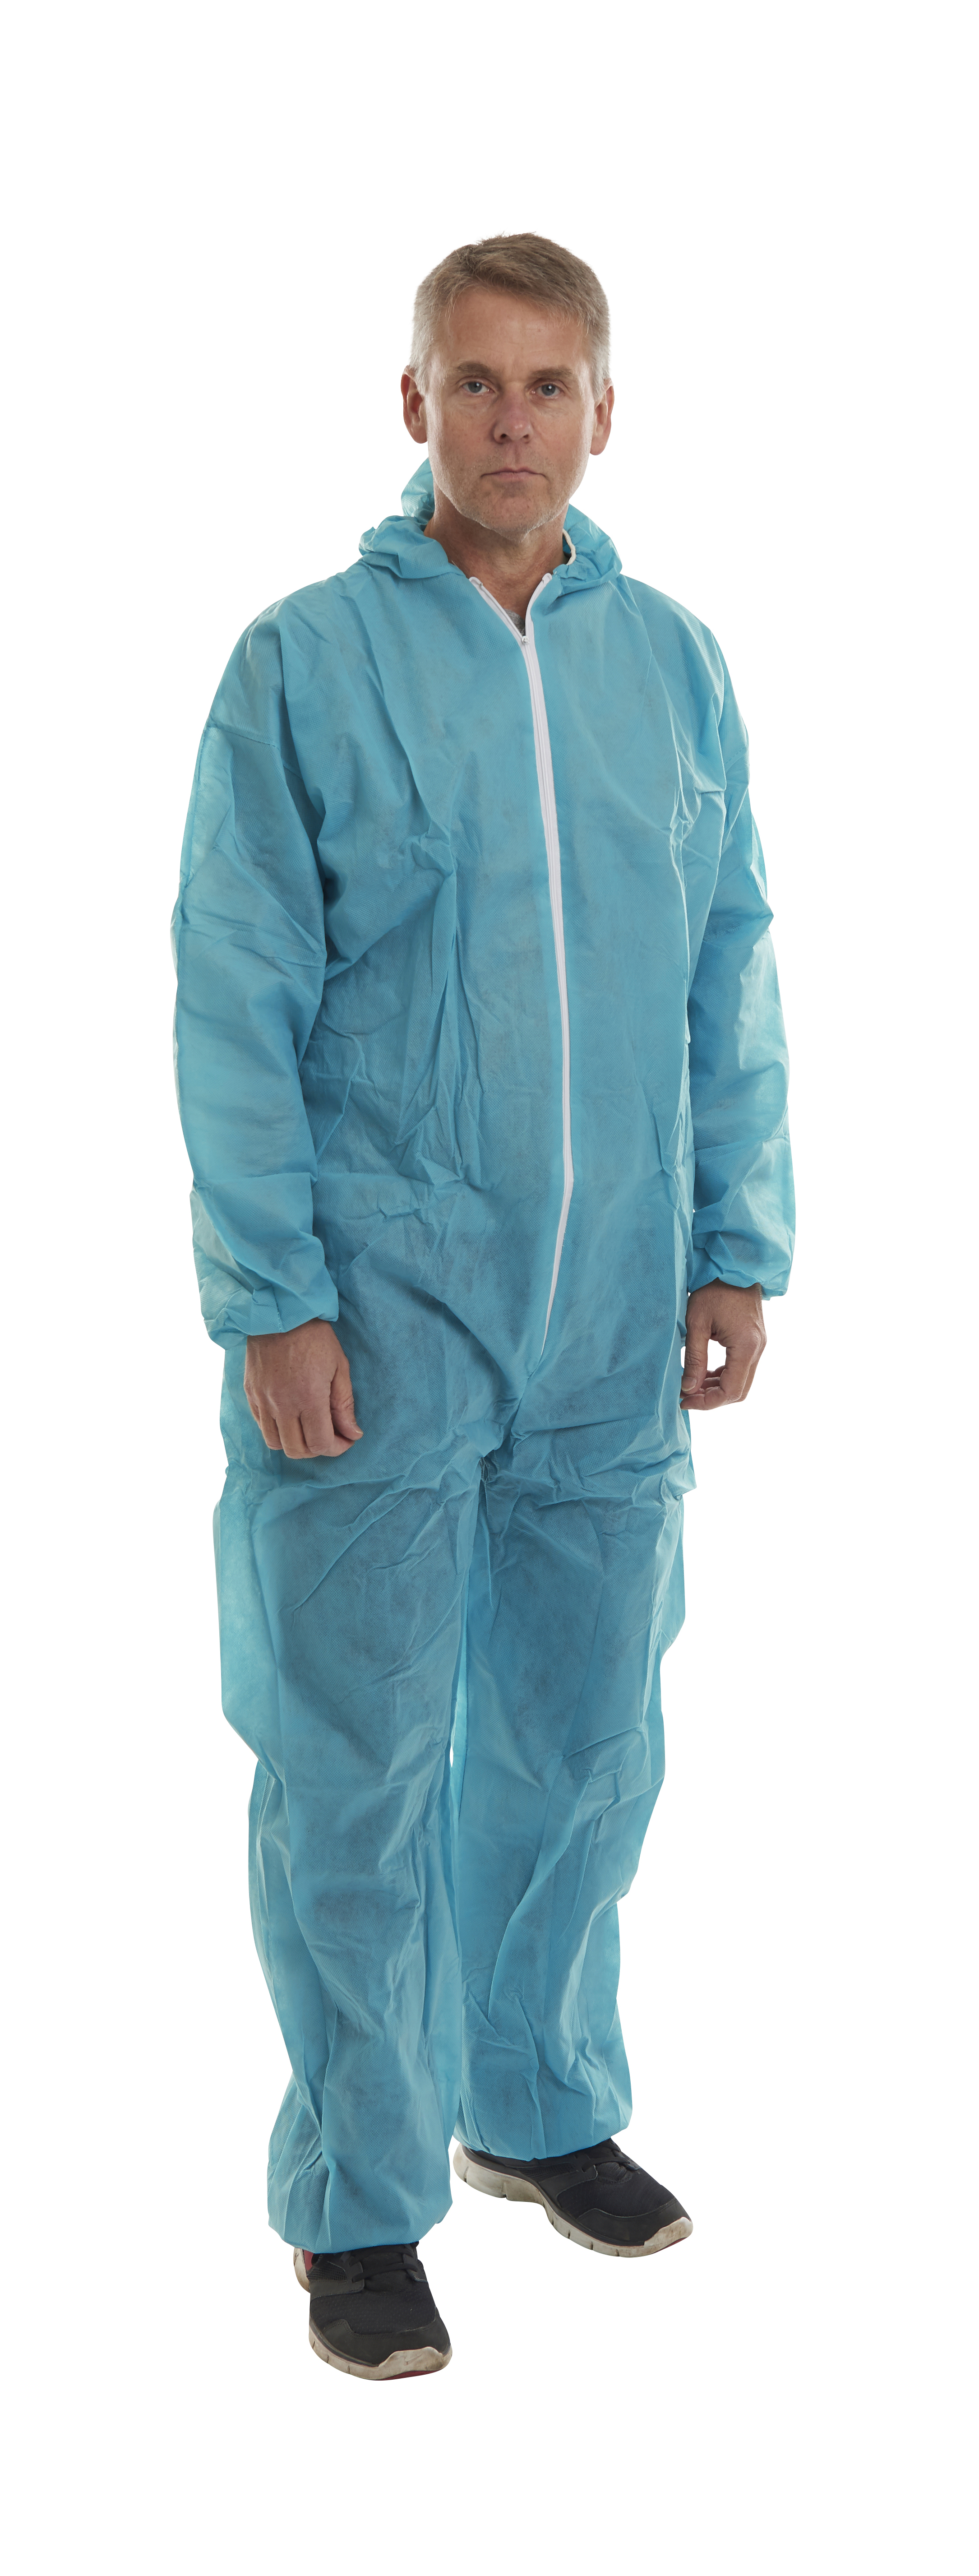 KRUTEX disposable suit, green, S